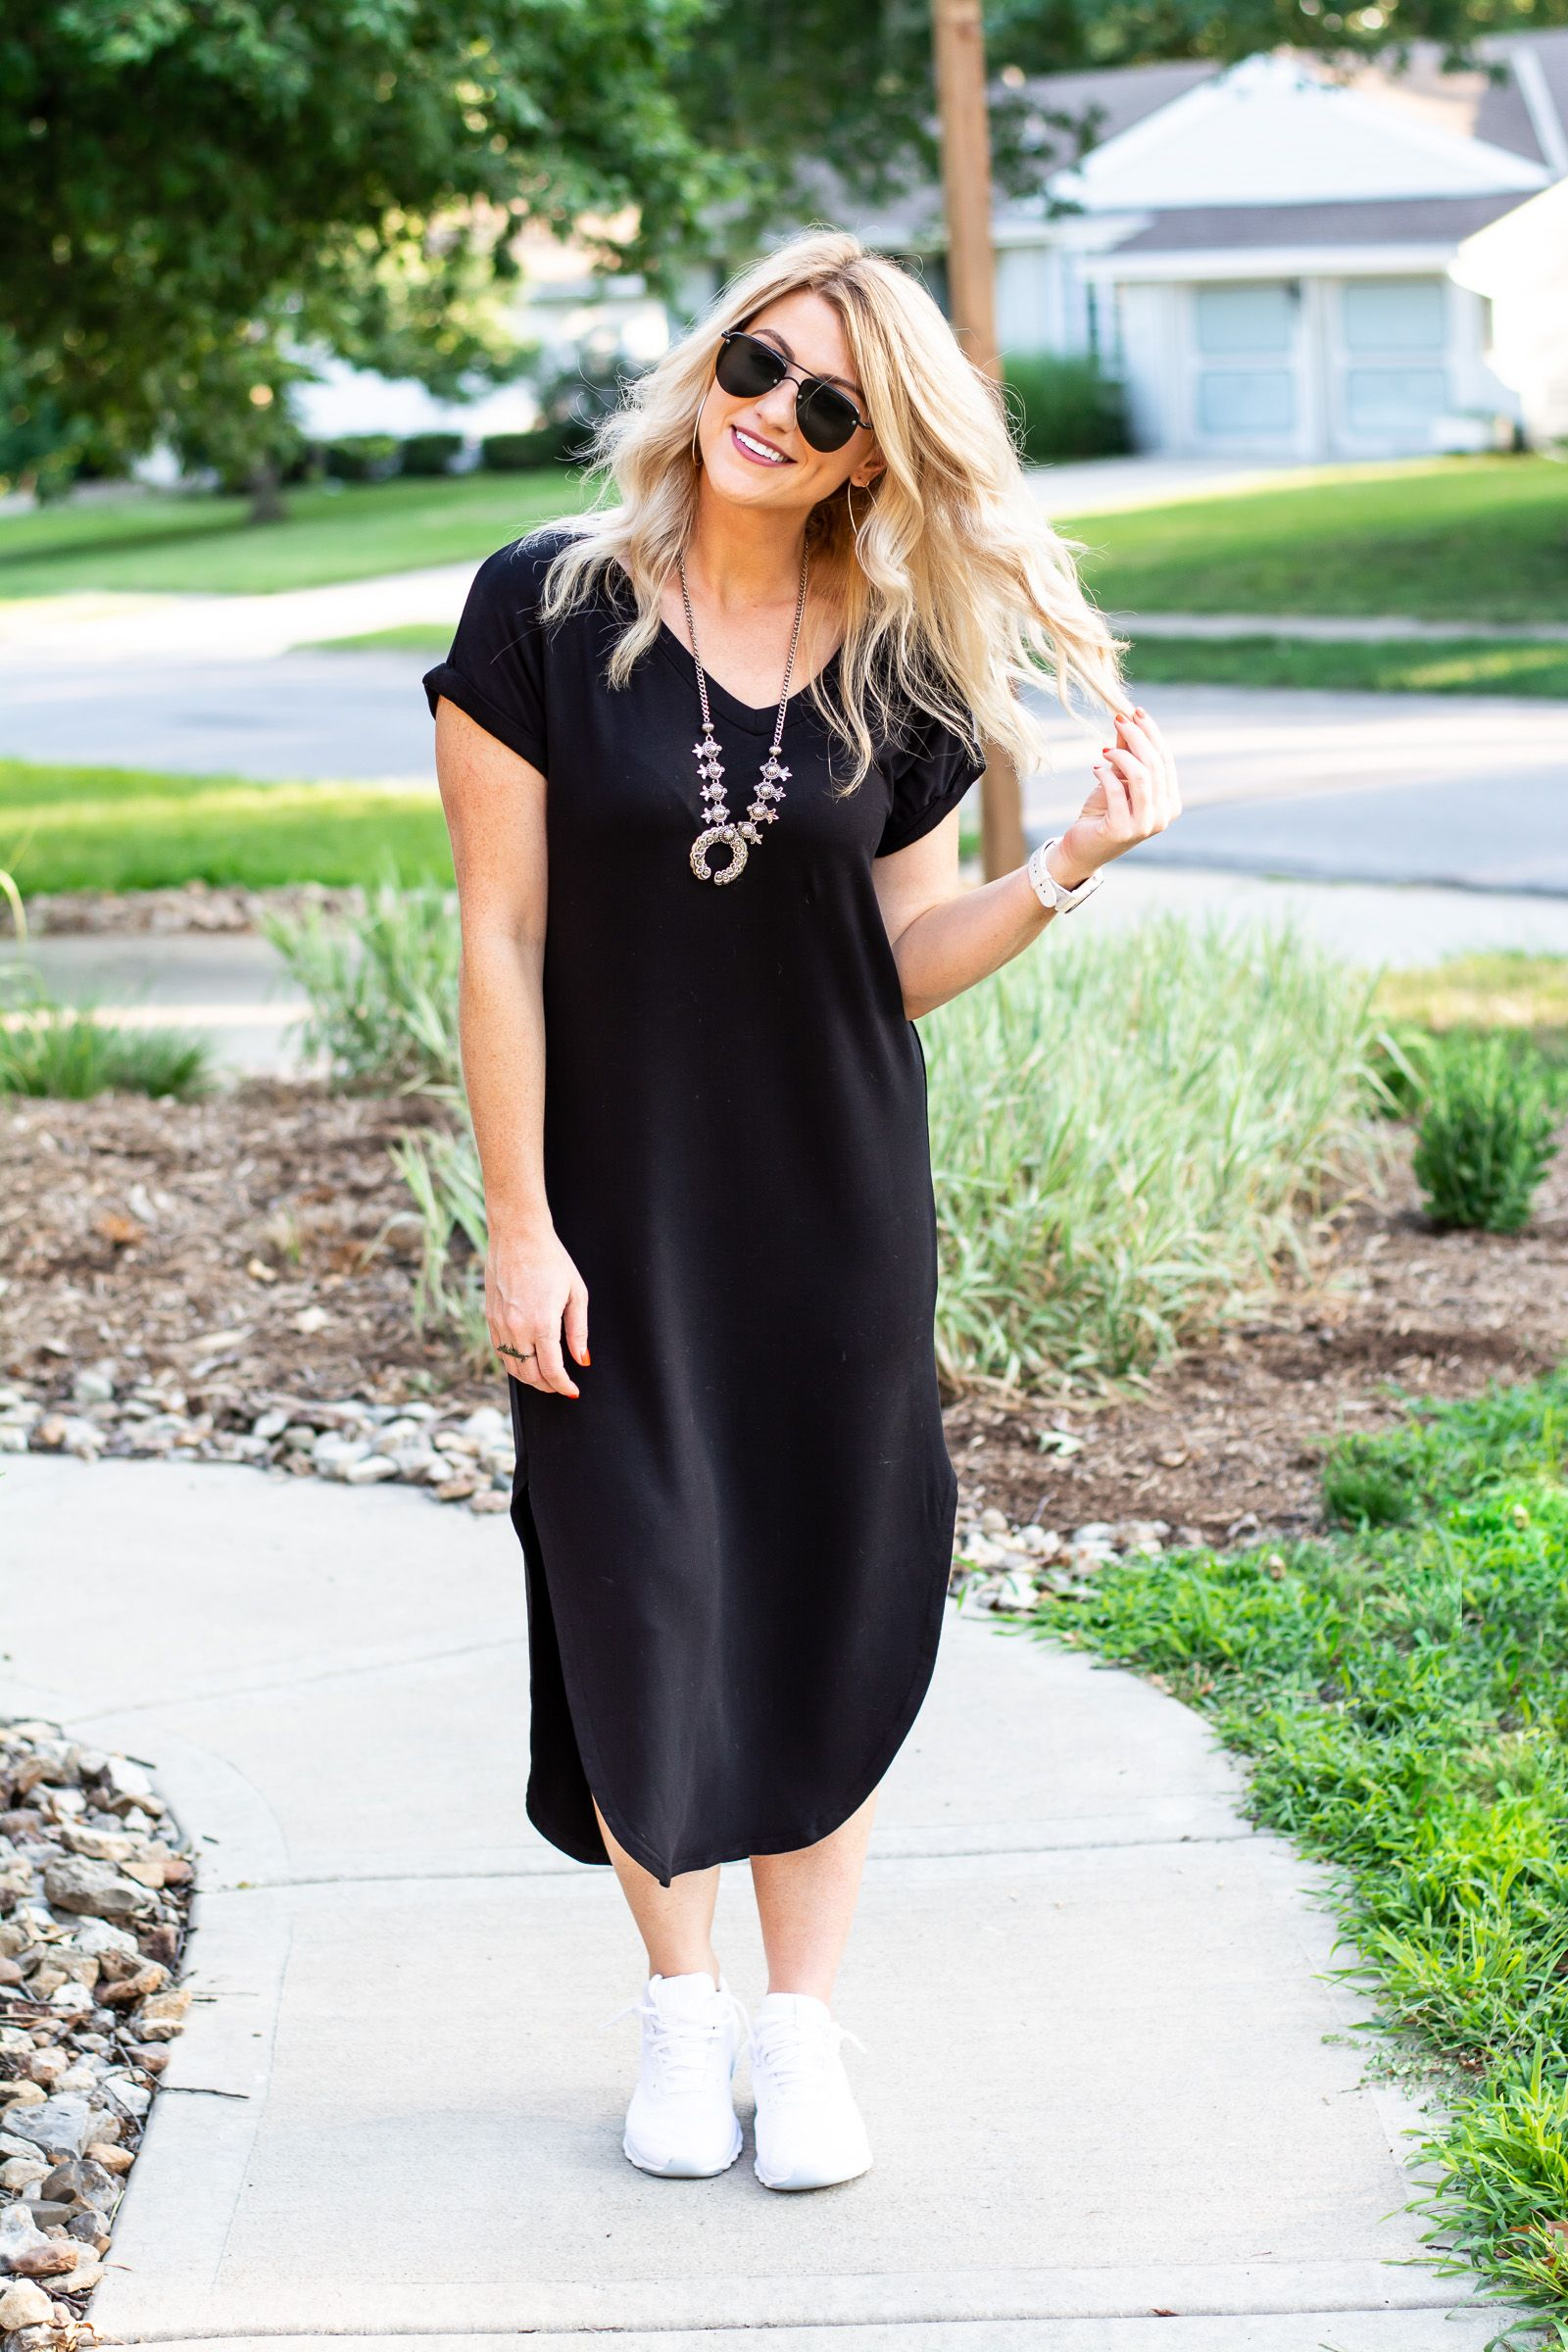 Outfit Idea Black T Shirt Dress White Sneakers Le Stylo Rouge Fashion Outfits Street Style Outfit [ 2400 x 1600 Pixel ]